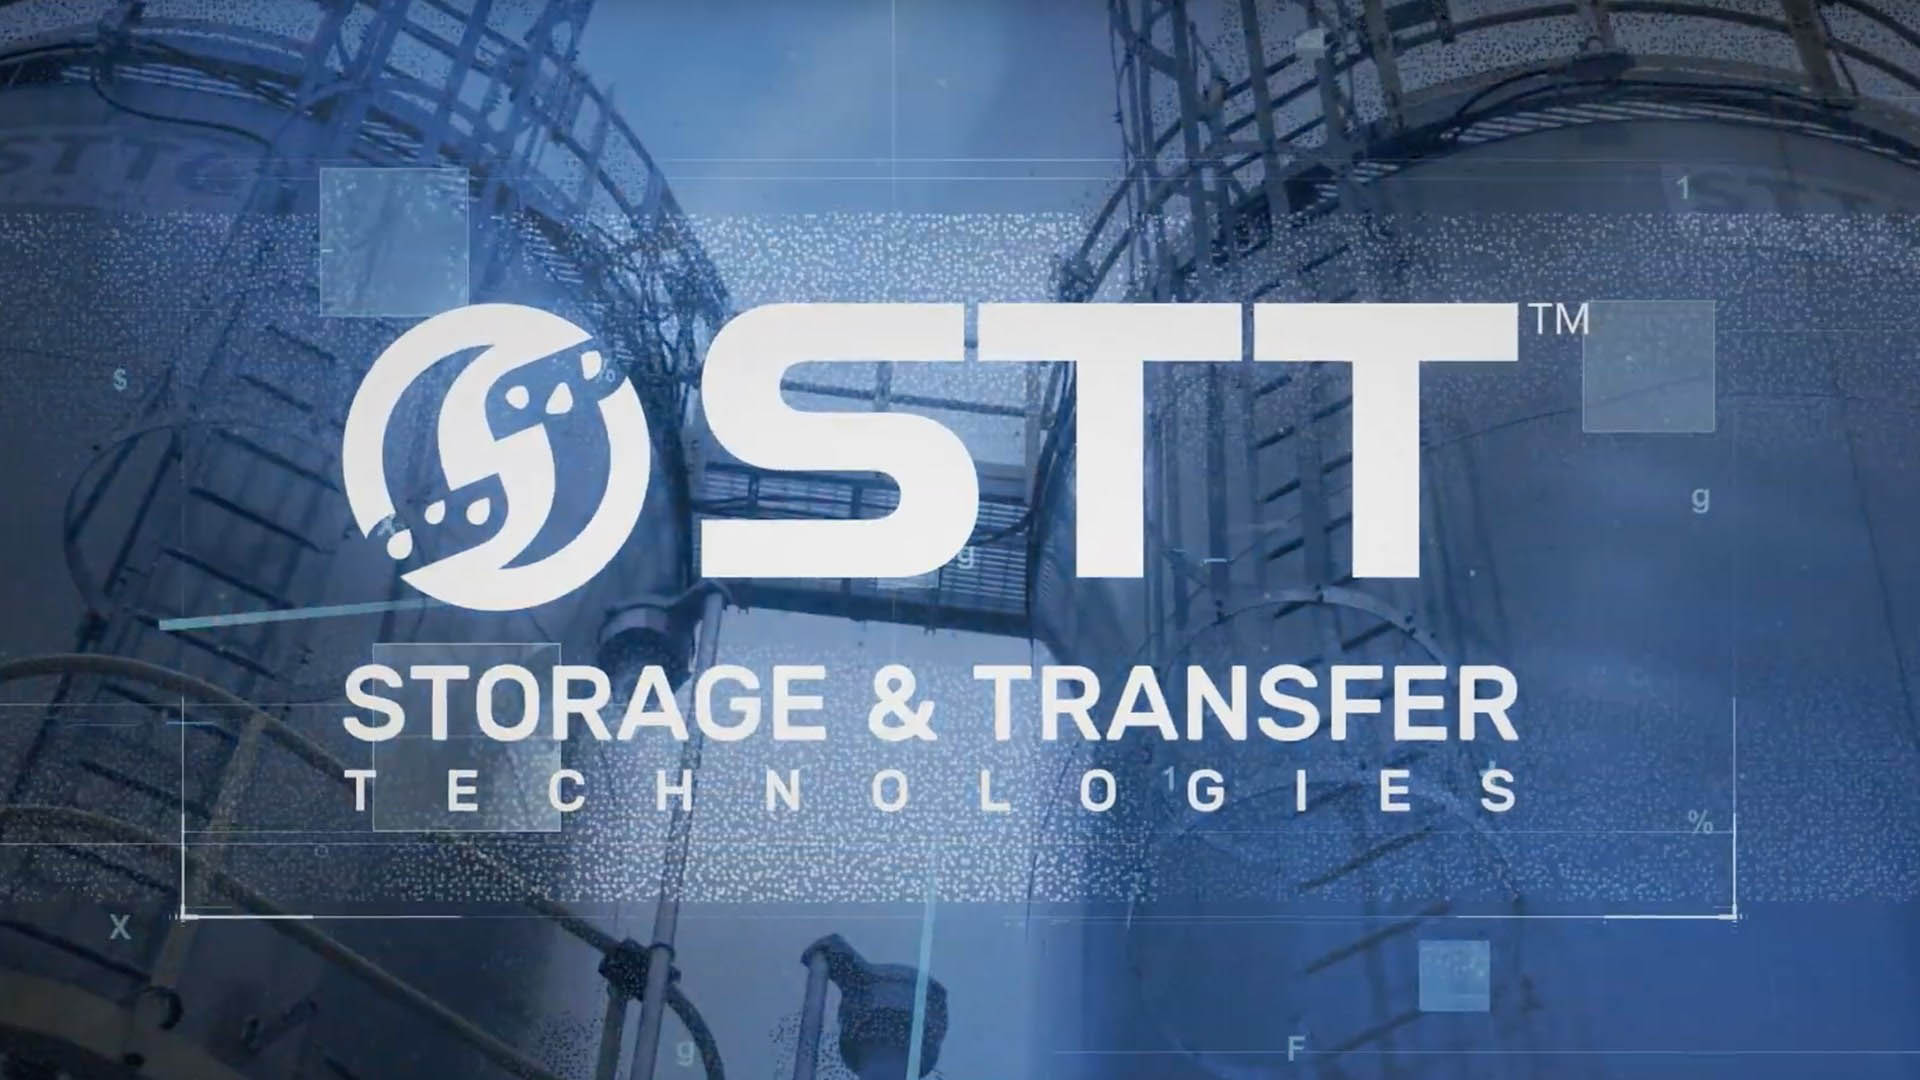 STT logo over background